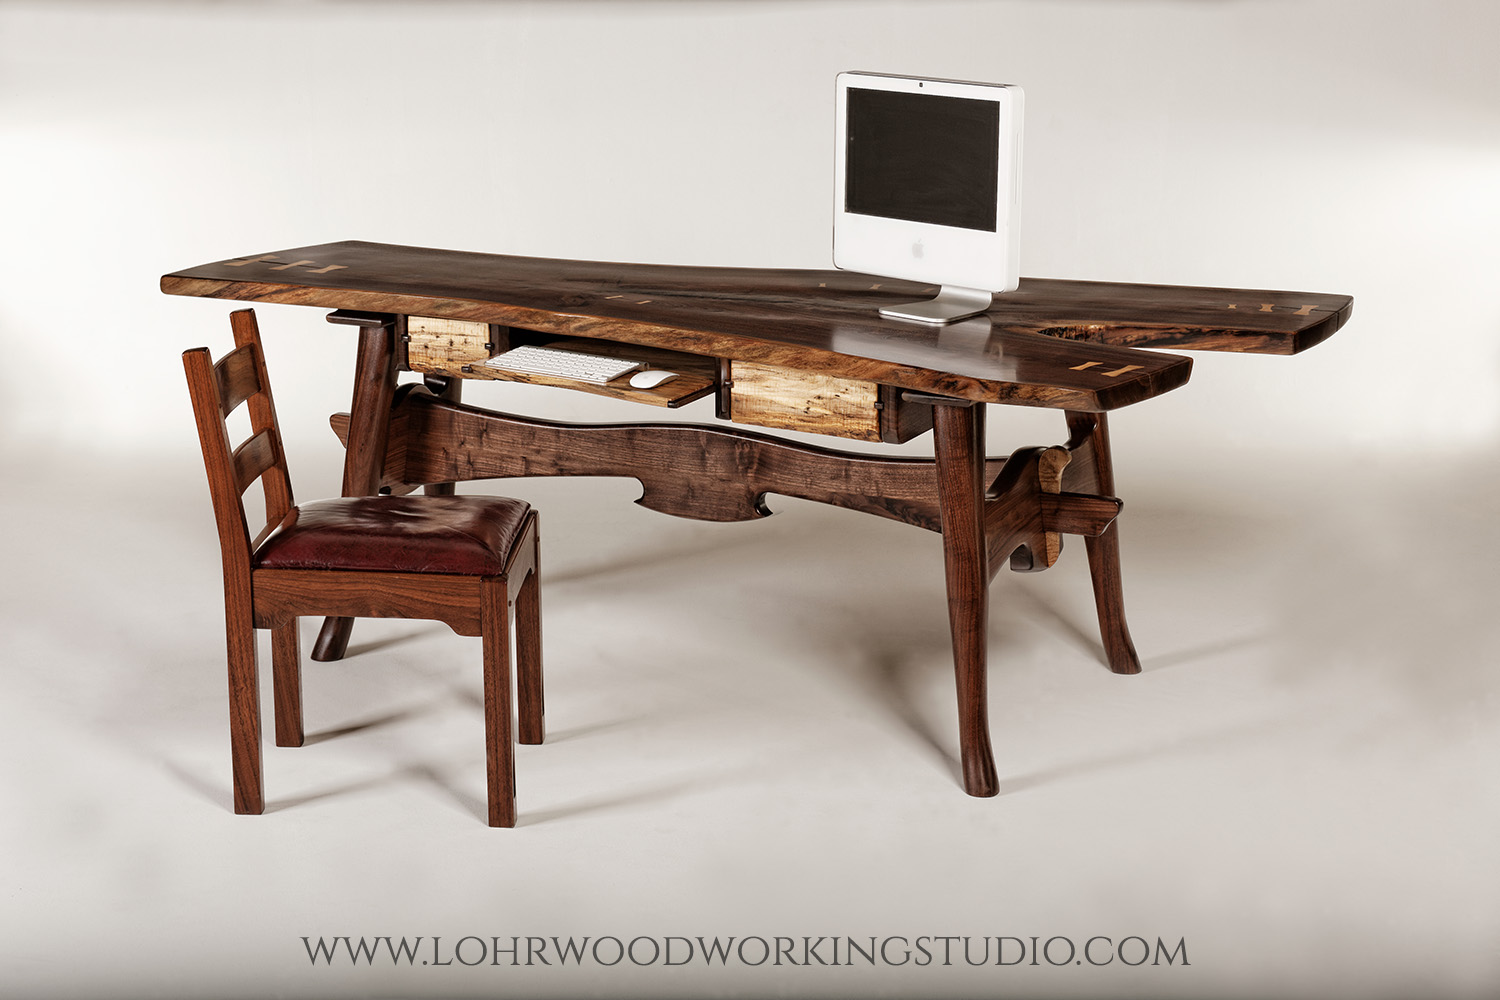 Live Edge Walnut Desk with Maple Drawers